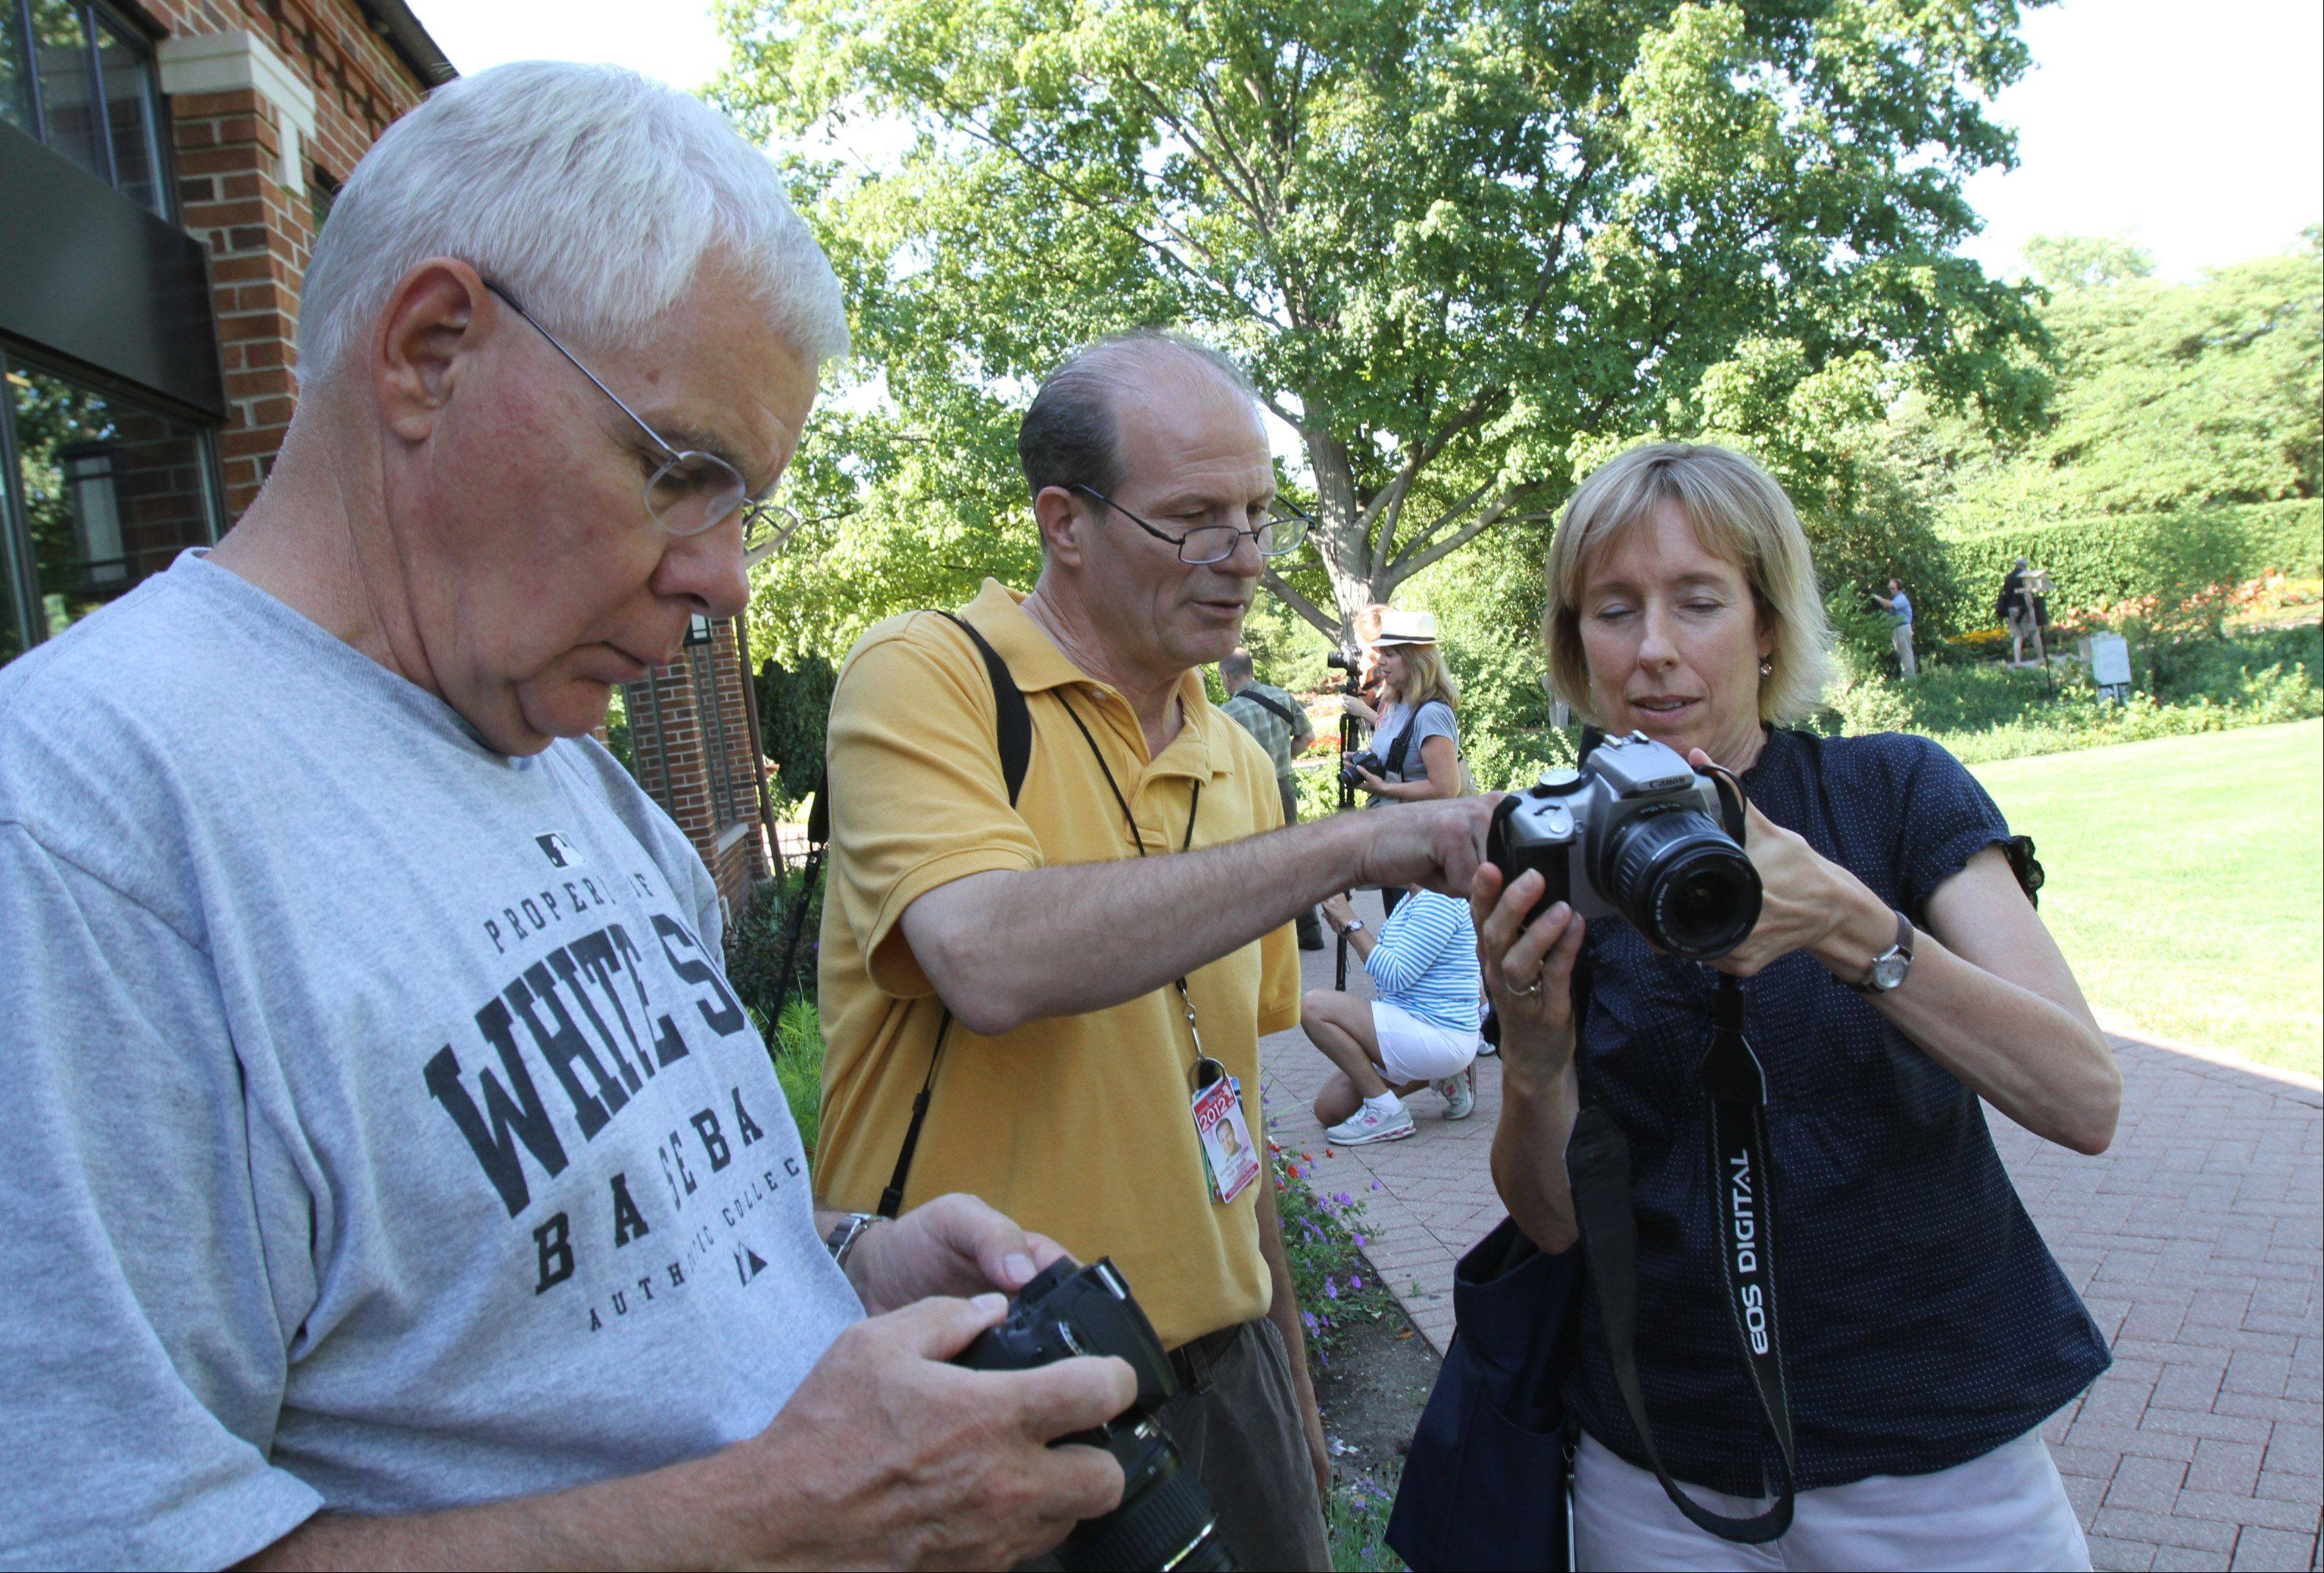 Nearly 100 participants came to Cantigny Park in Wheaton on Thursday to attend a photography workshop lead by Daily Herald photographers. The event is part of the paper's monthly Subscriber Total Access events.